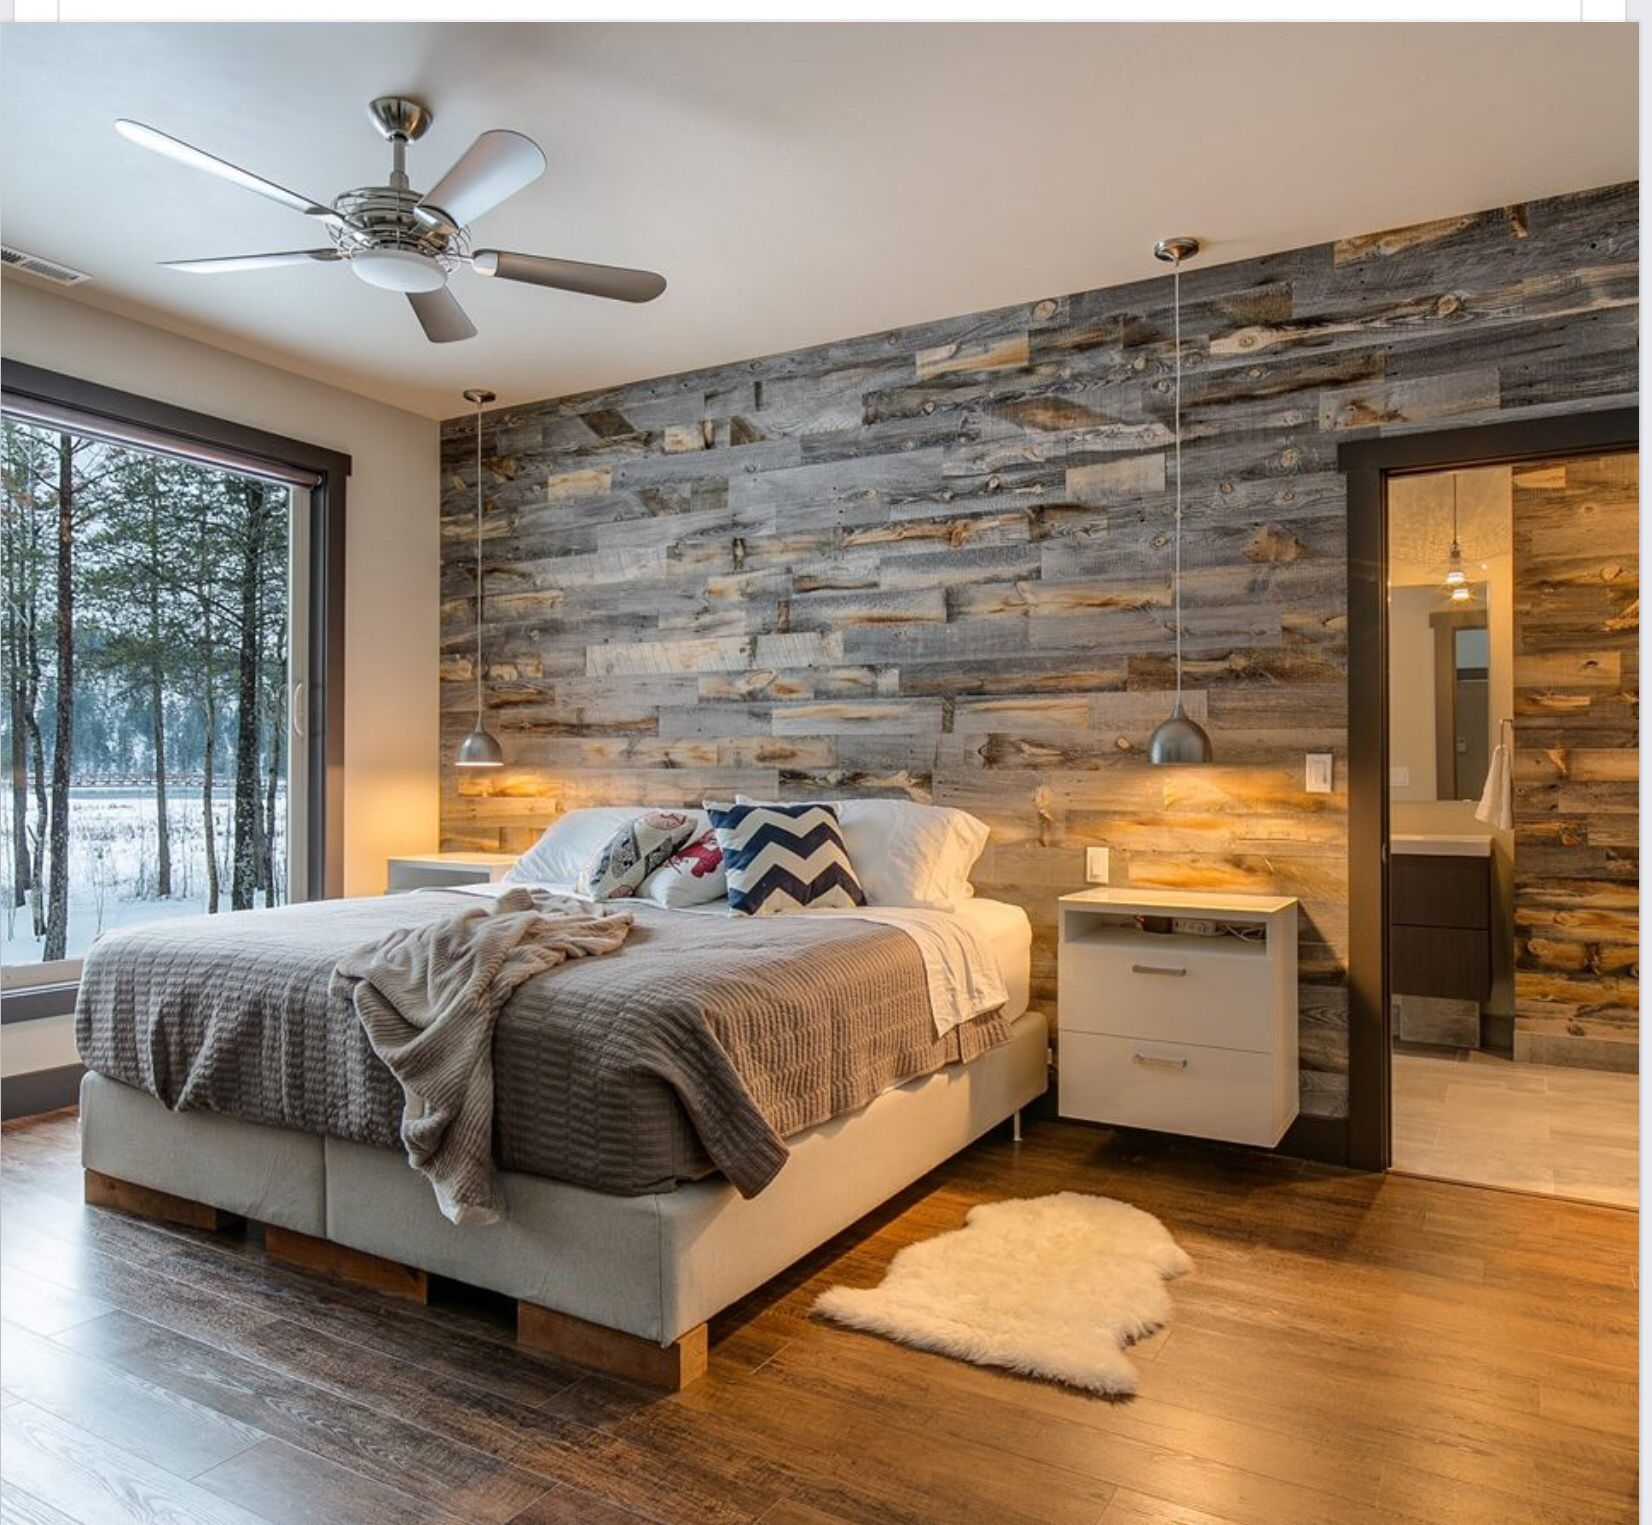 Trim, Light, Bed Frame, Back Wall Wall Wood, Master Bedroom Wood Wall